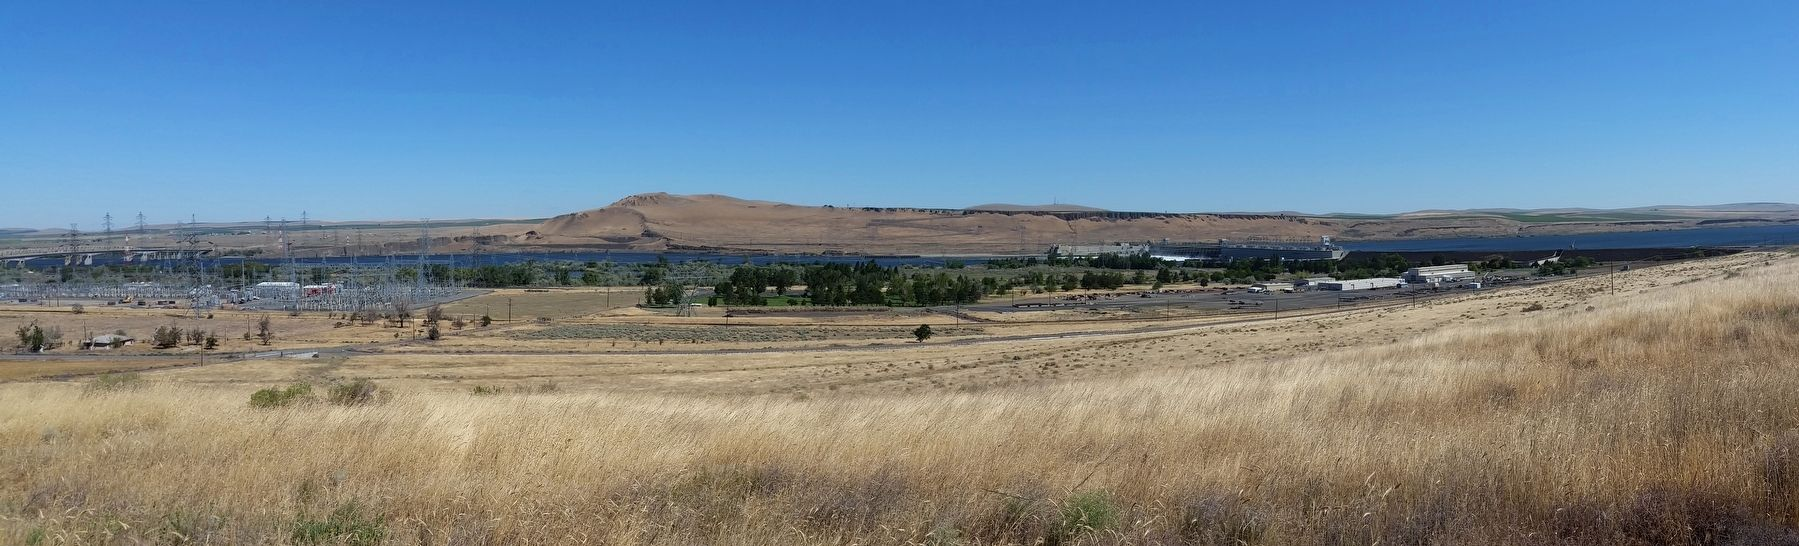 Columbia River, McNary Dam and Lake Wallula (<i>view from marker</i>) image. Click for full size.